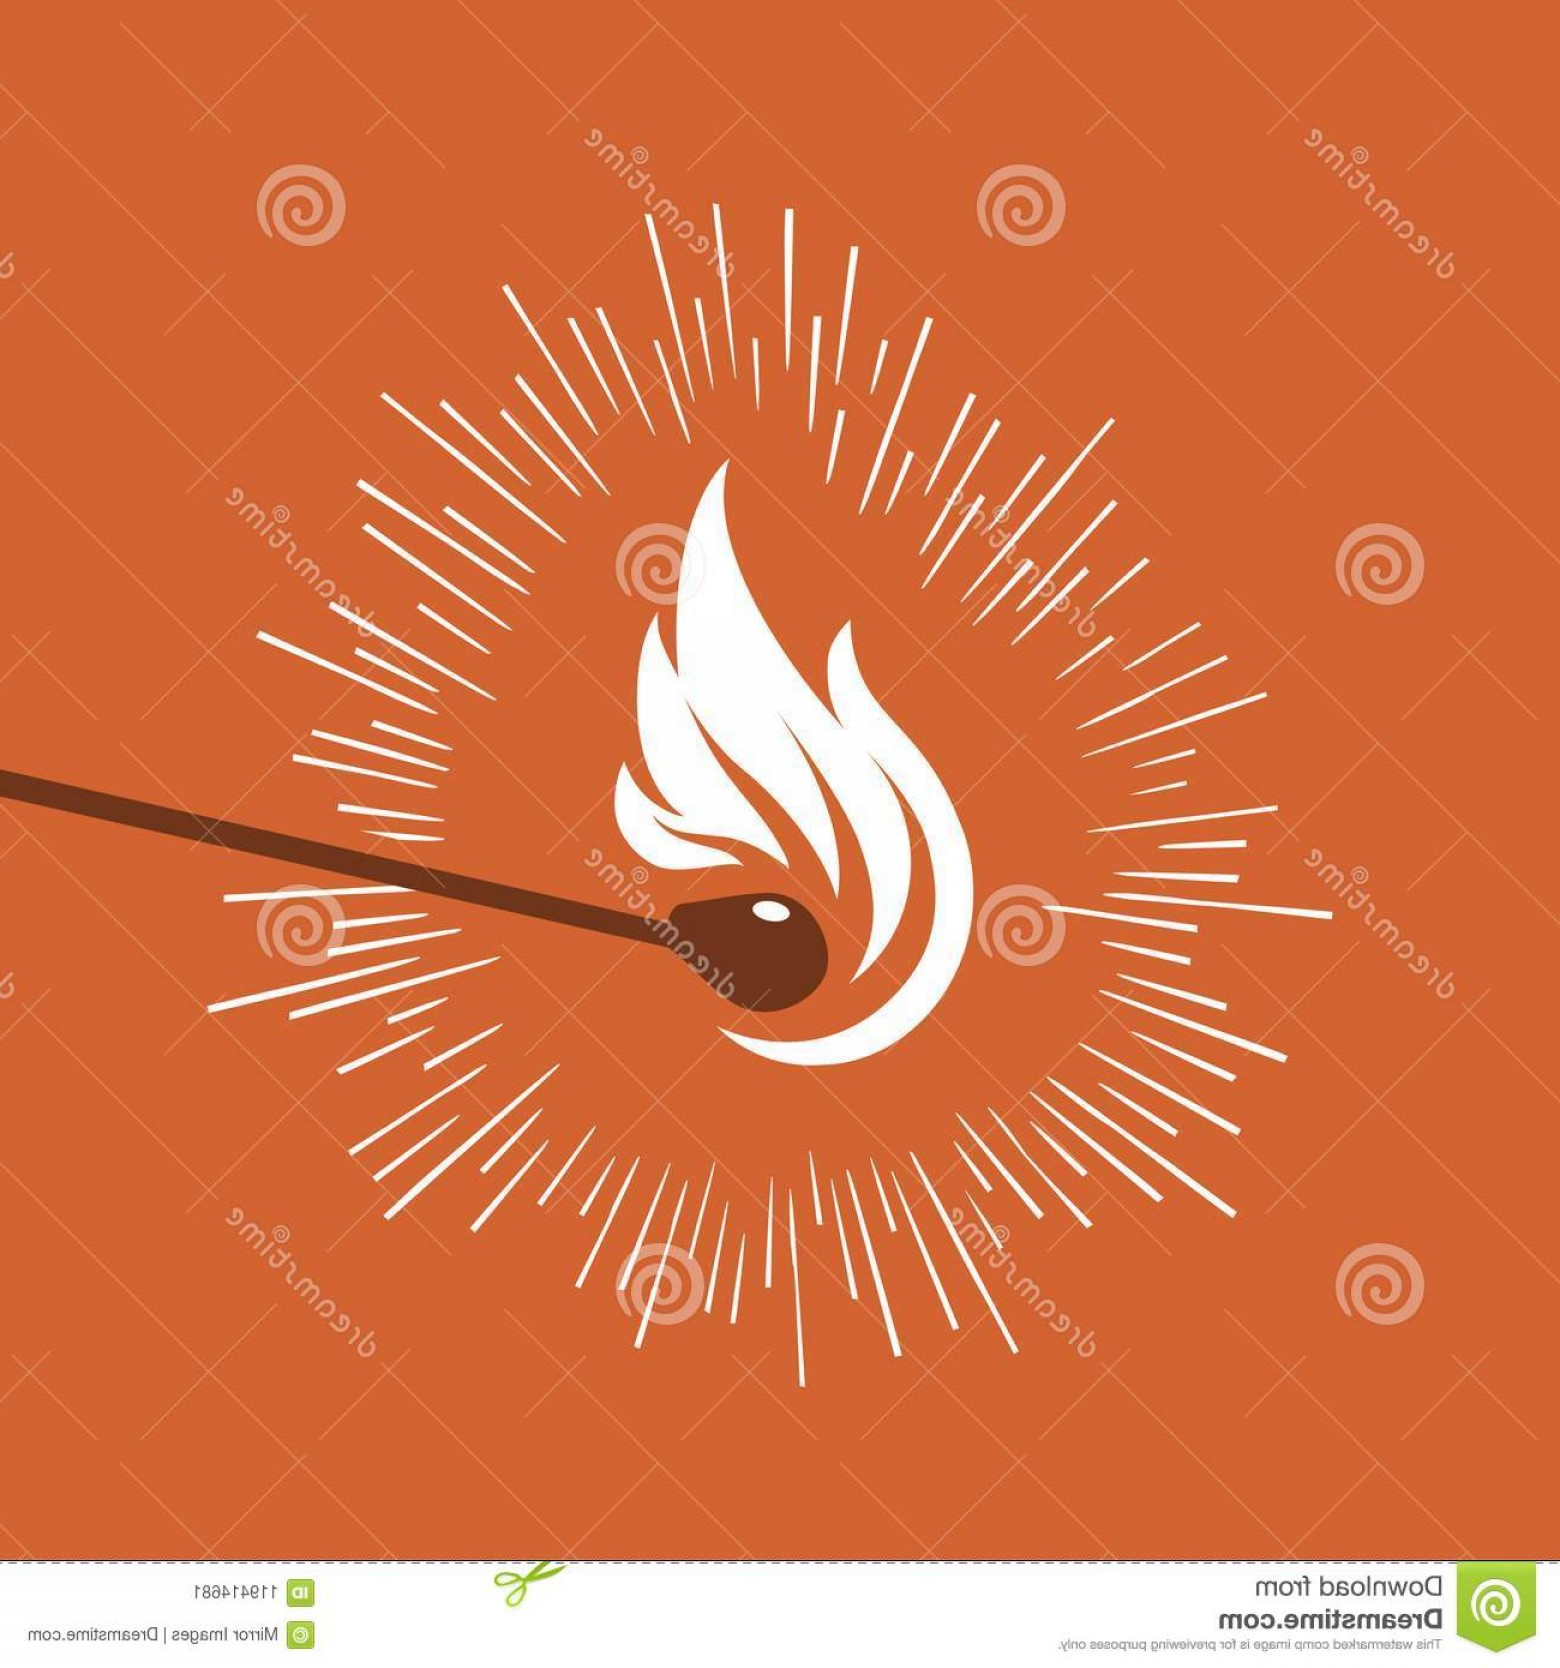 Vector Flame Stick Pattern: Stick Matchstick Flame Accents Graphics White Flame Mactch Stick Red Background Graphic Luminous Lines Image